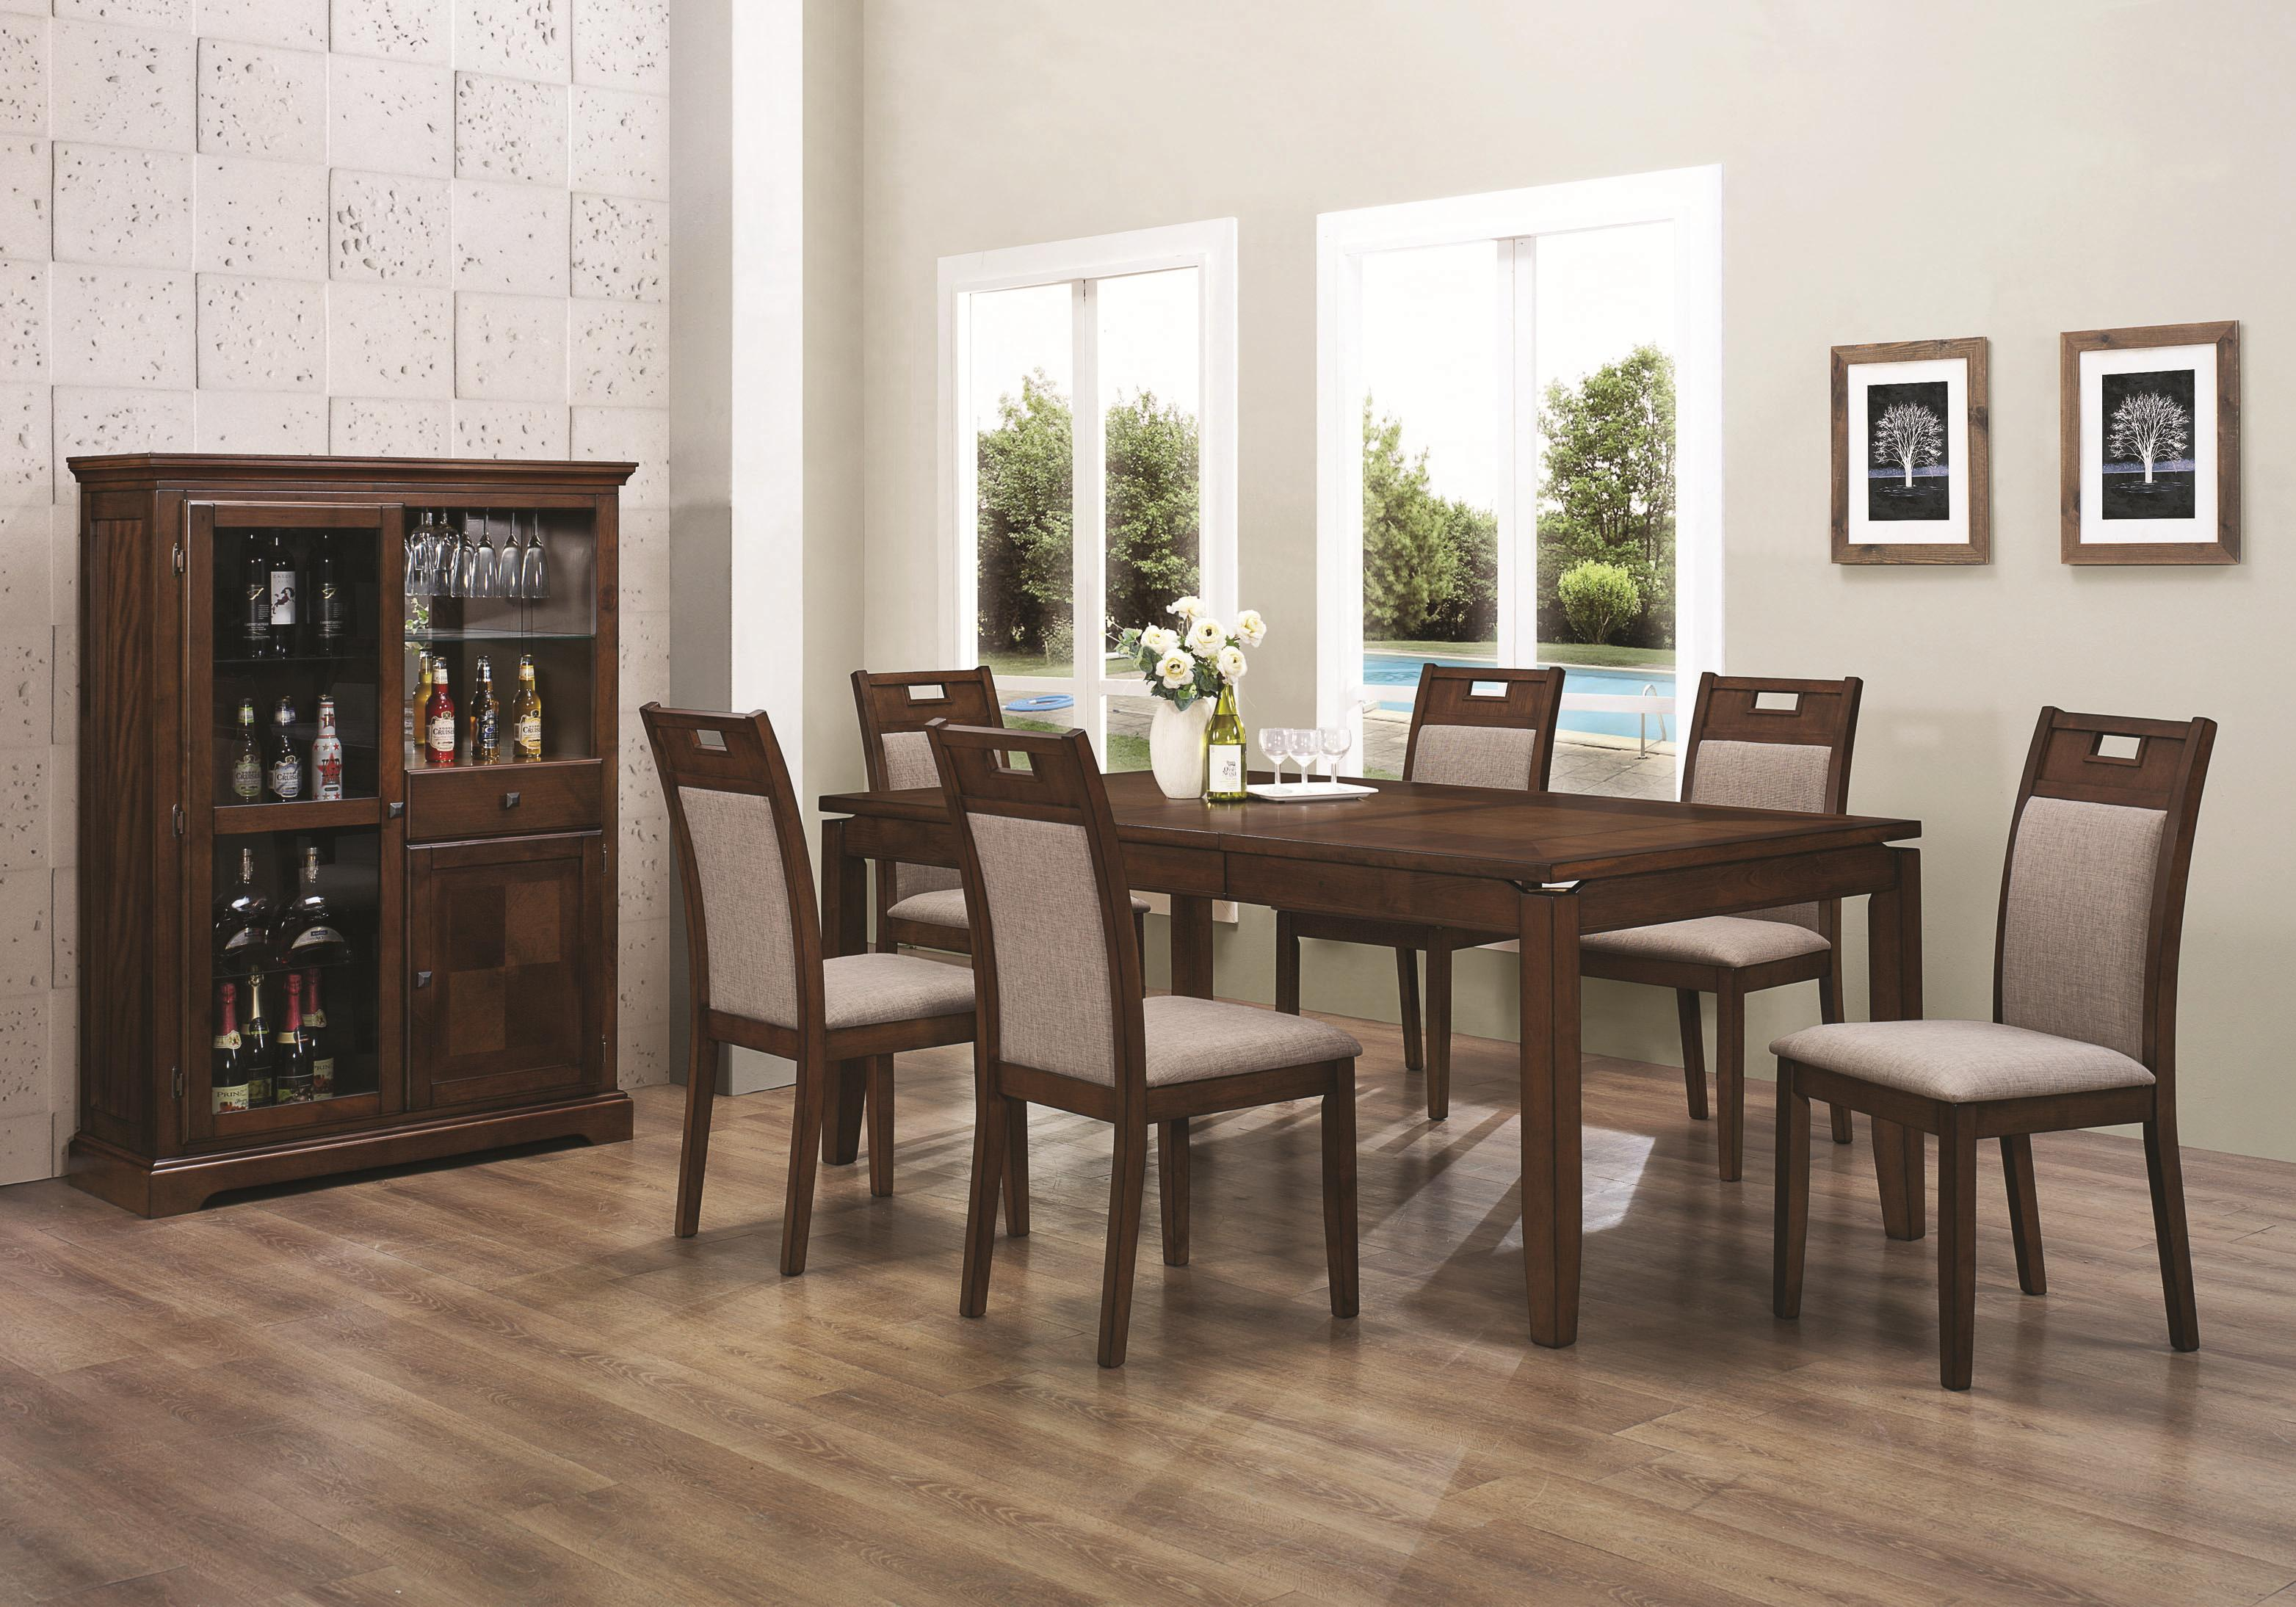 dining rooms chairs furniture | decoration designs guide